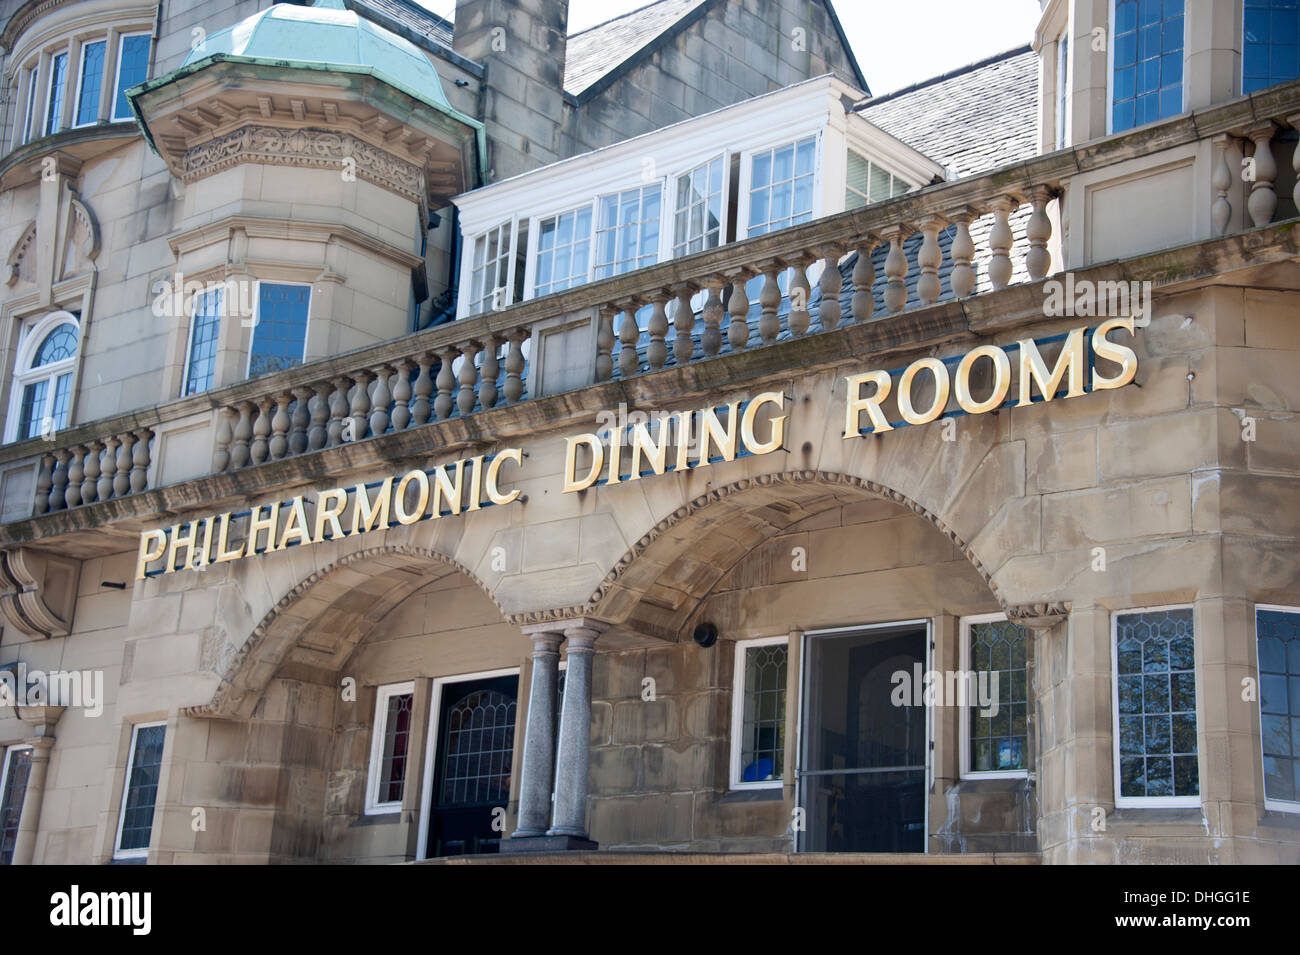 Philharmonic Dining Rooms Liverpool UK Toilets Gold   Stock Image. Philharmonic Dining Rooms Liverpool Stock Photos   Philharmonic